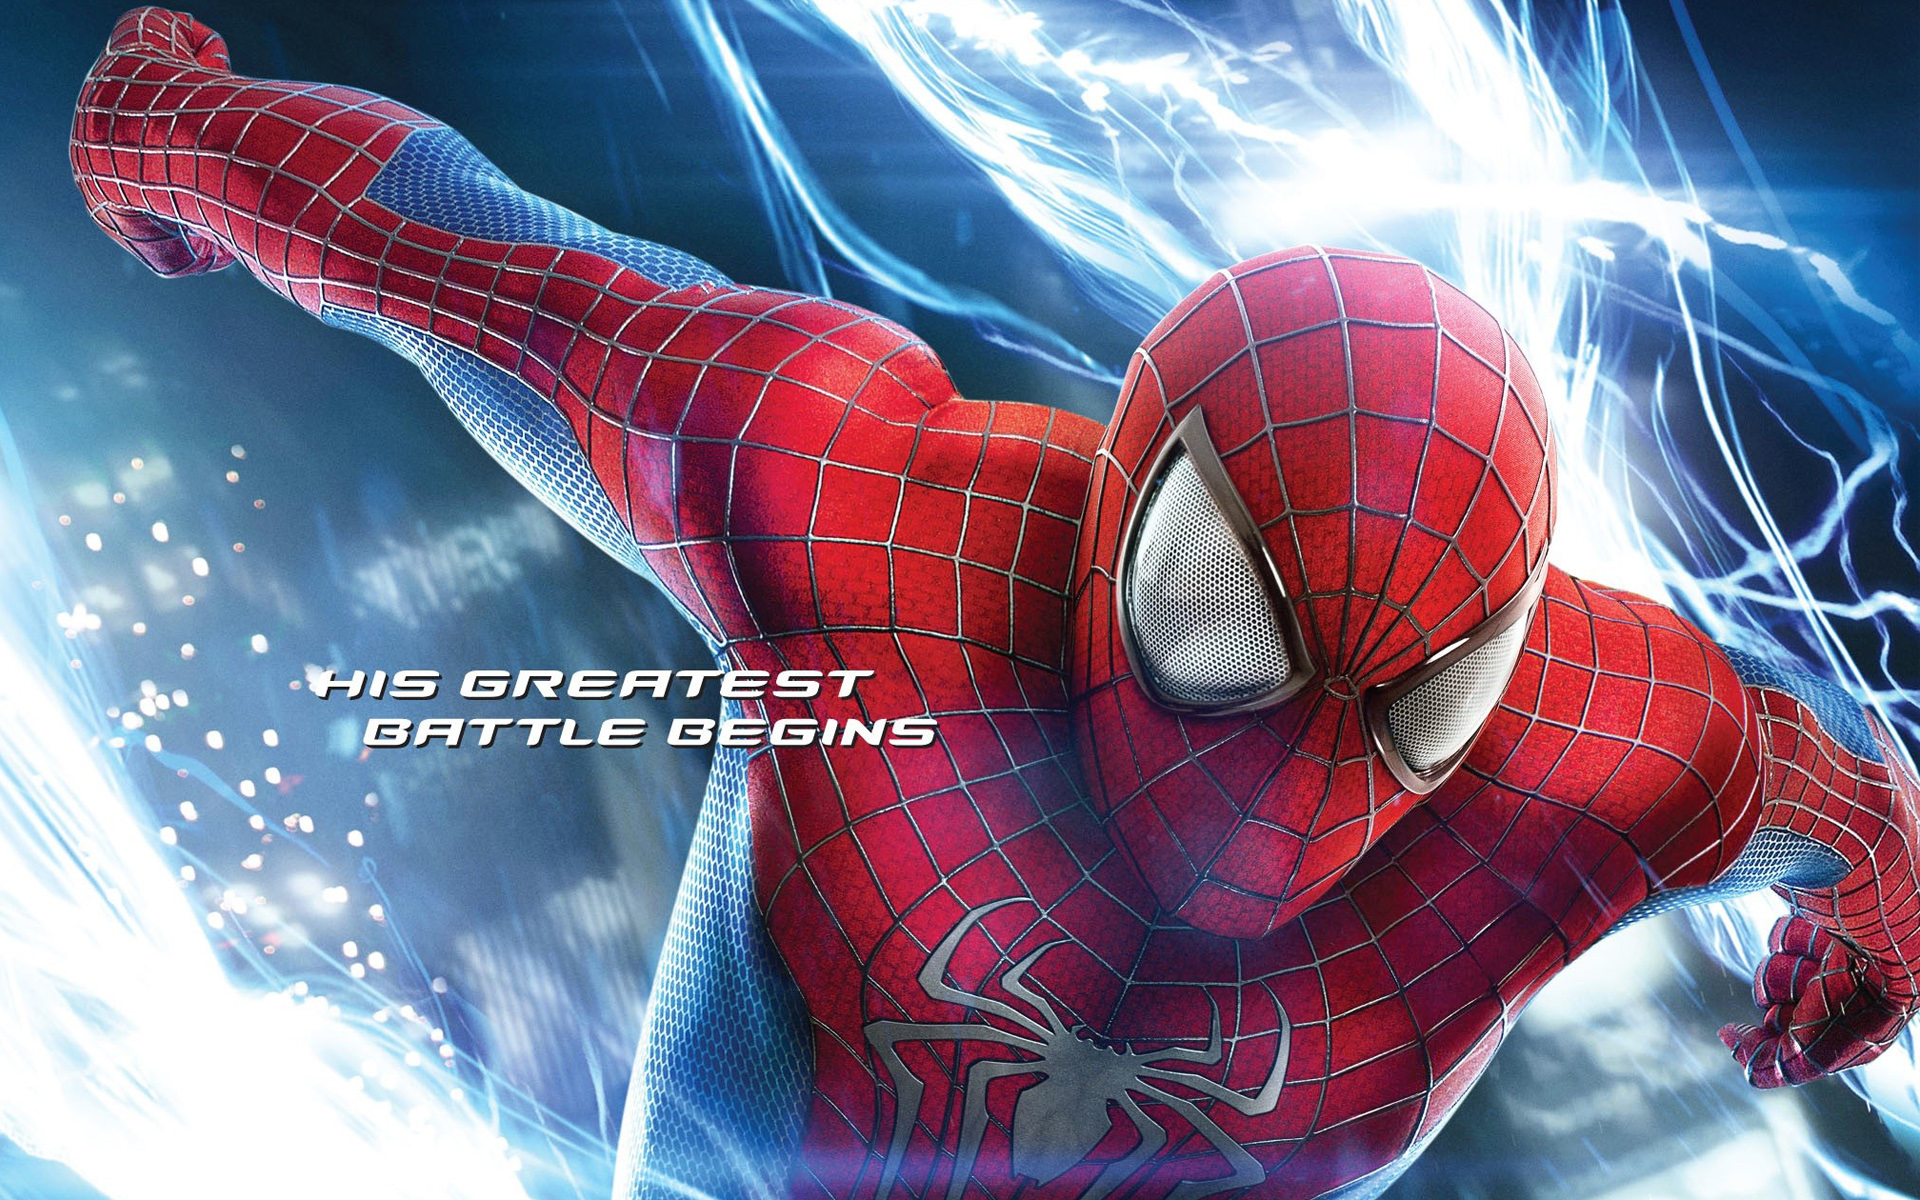 the amazing spider-man 2 wallpapers, pictures, images